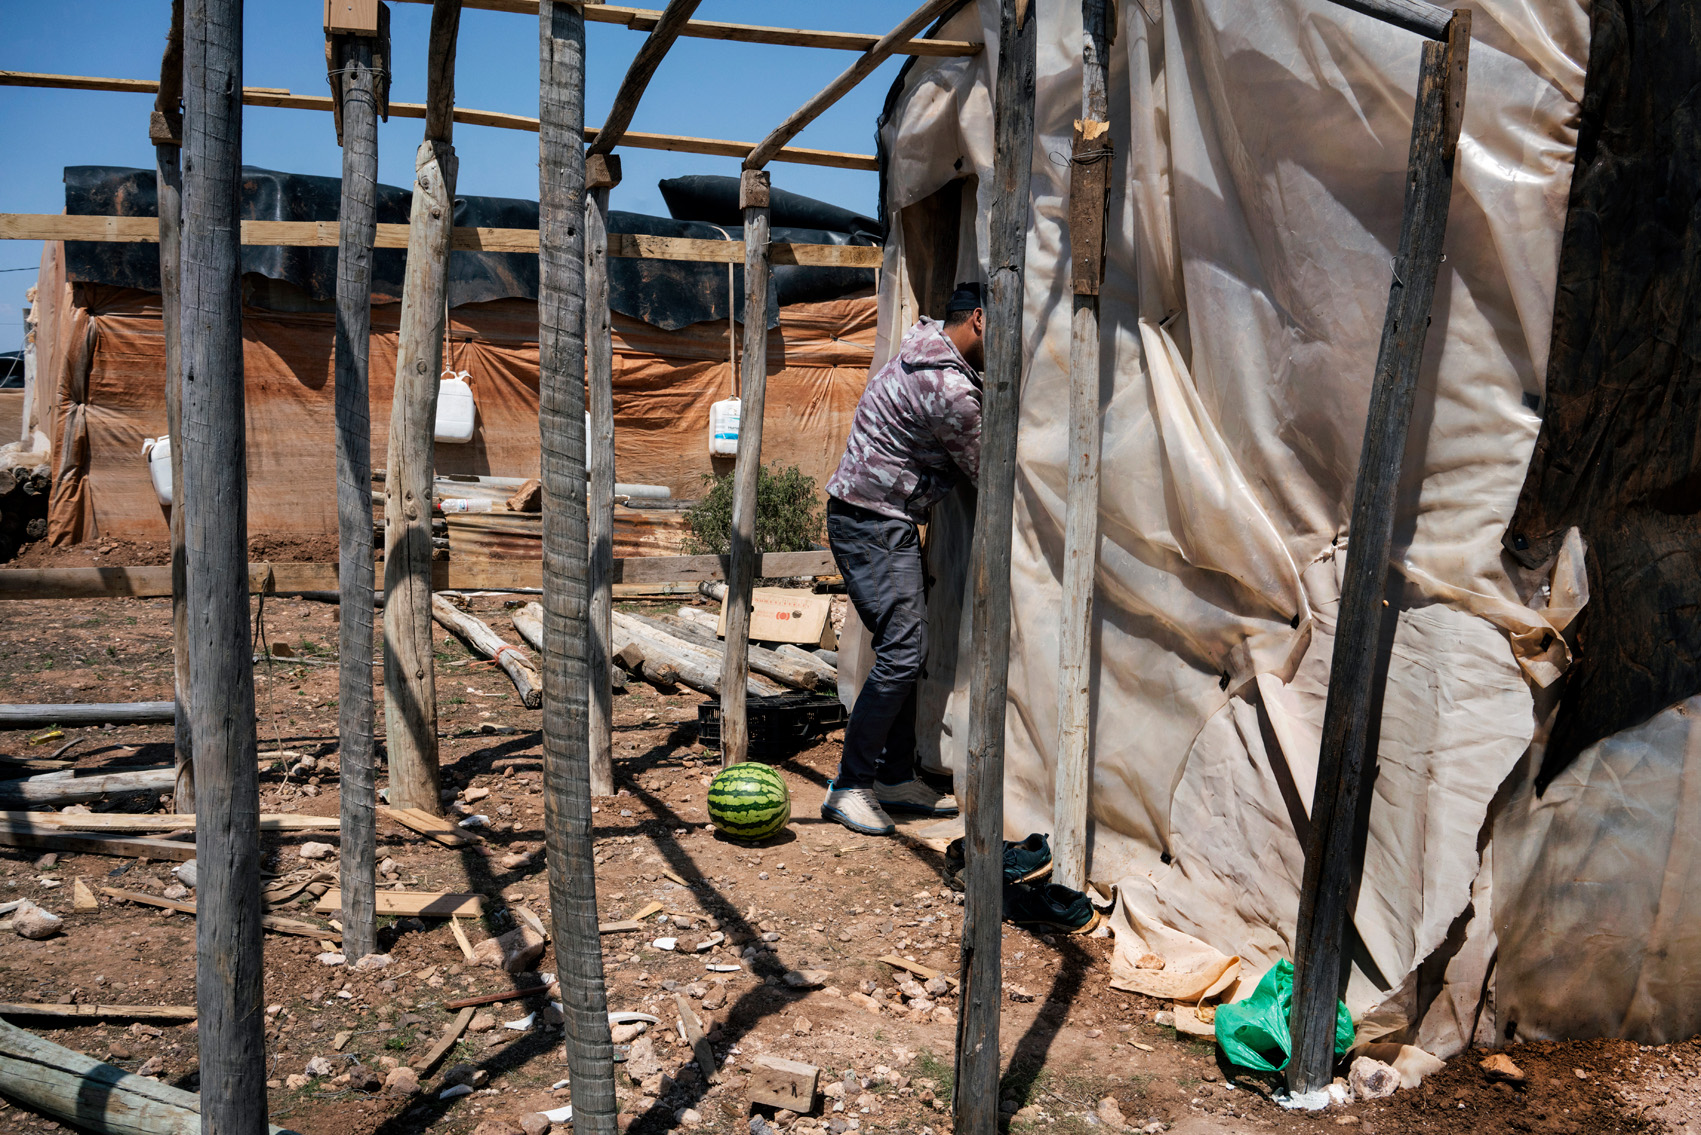 A Moroccan migrant worker in a ghetto of self-constructed plastic shacks, Spain.